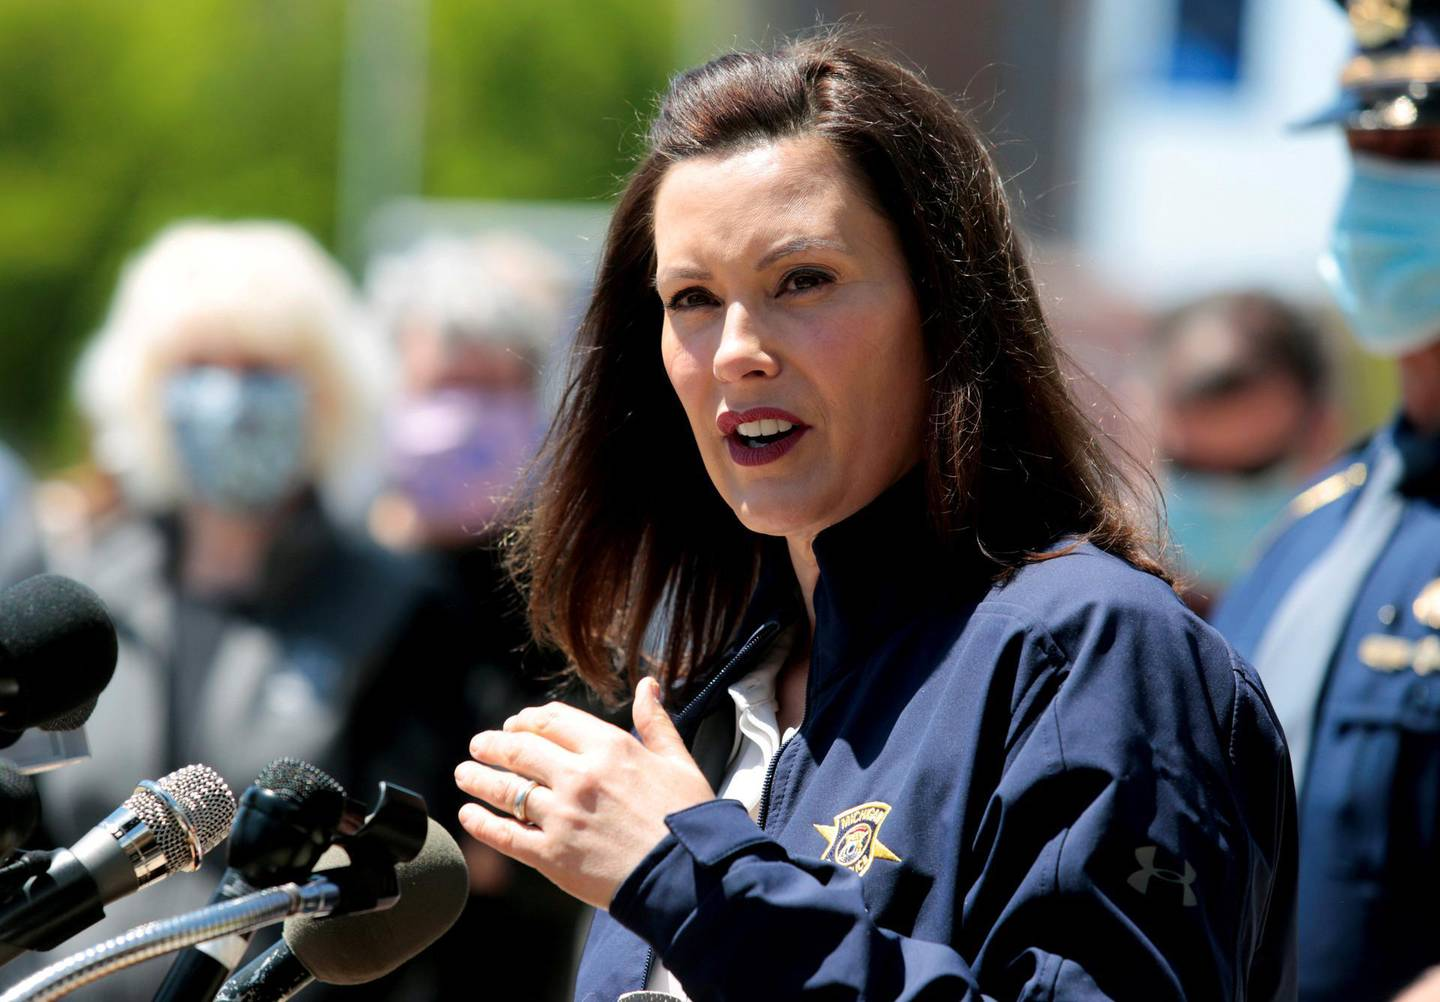 FILE PHOTO: Michigan Governor Gretchen Whitmer addresses the media about the flooding along the Tittabawassee River, after several dams breached, in downtown Midland, Michigan, U.S., May 20, 2020. REUTERS/Rebecca Cook/File Photo